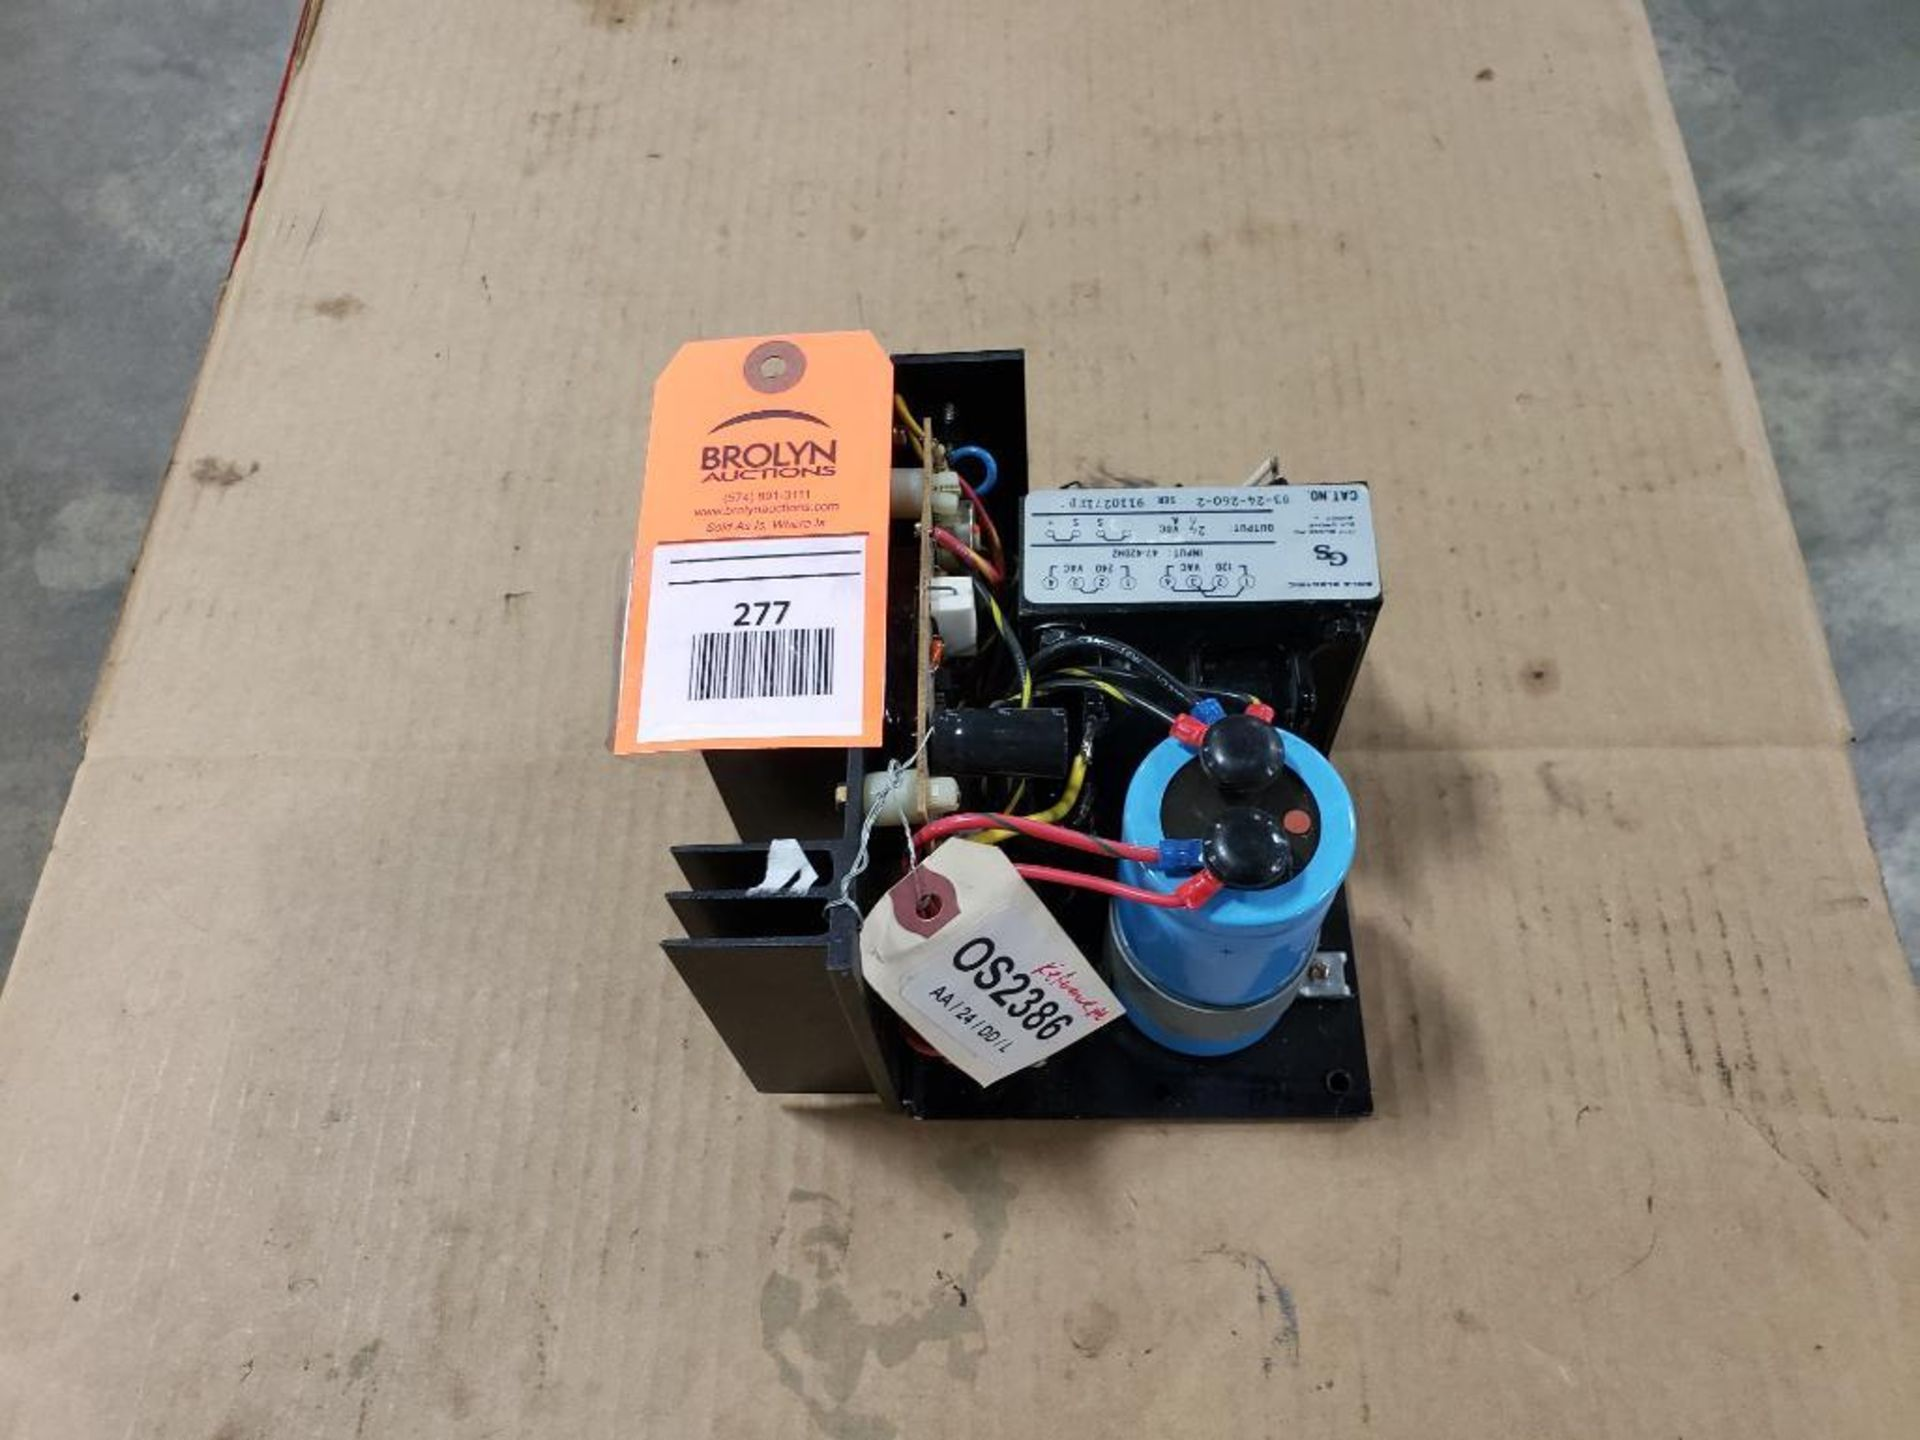 Sola Electric 83-24-260-2 Power supply.